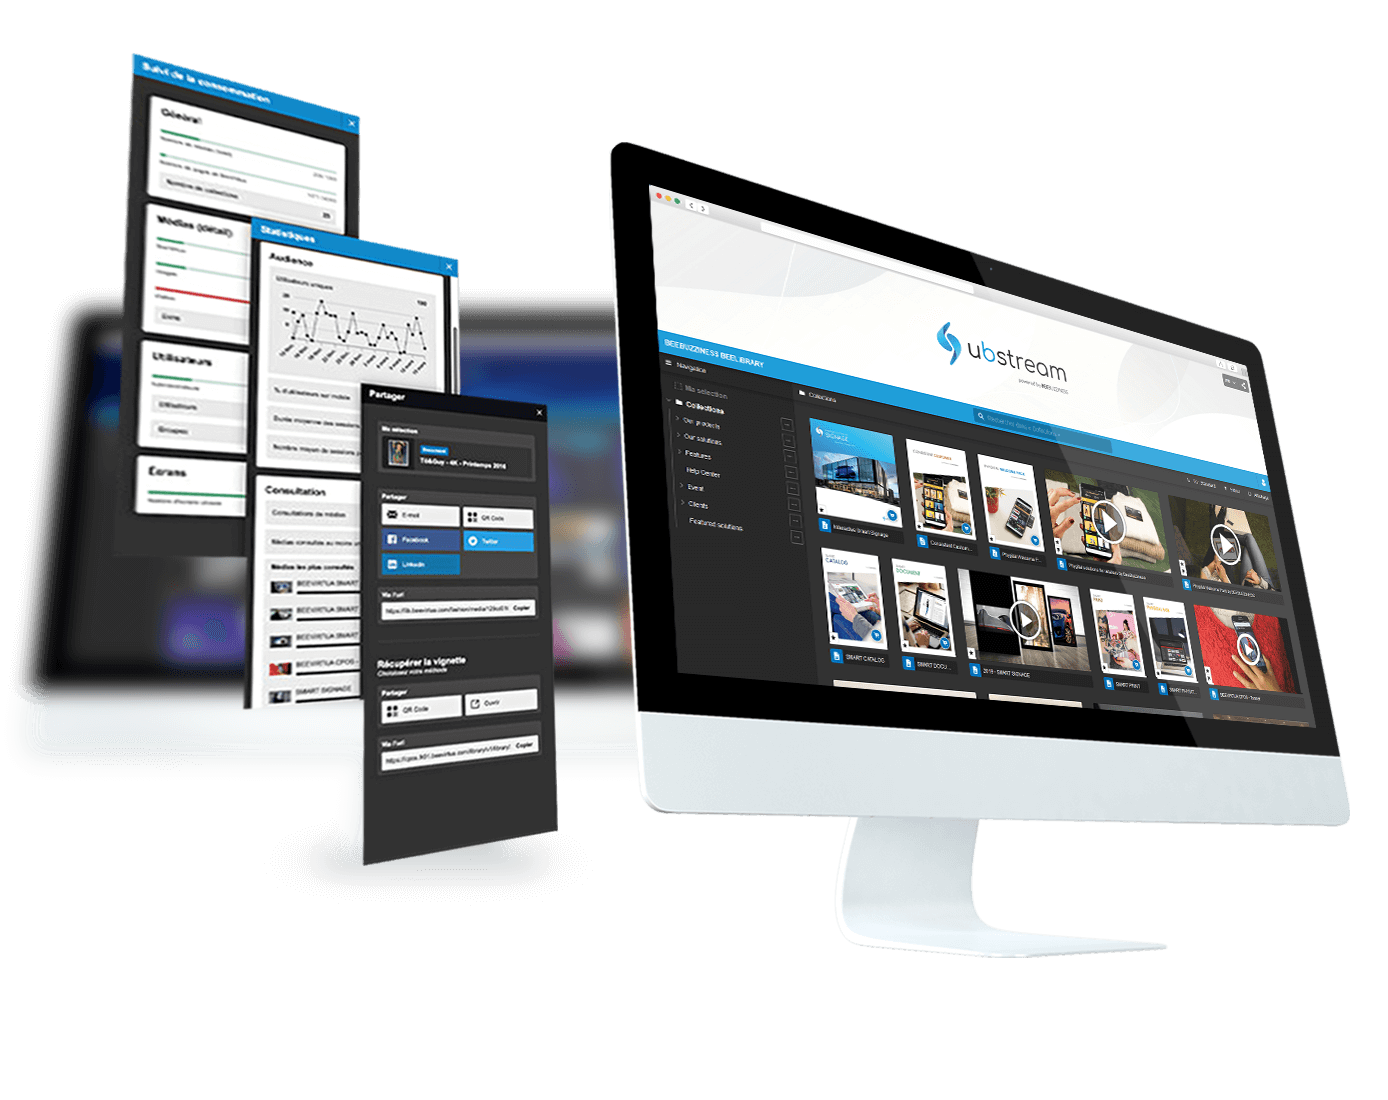 Ubstream-DAM-Print-On-Demand-Digital-Signage-Brand-Content-Manager.png